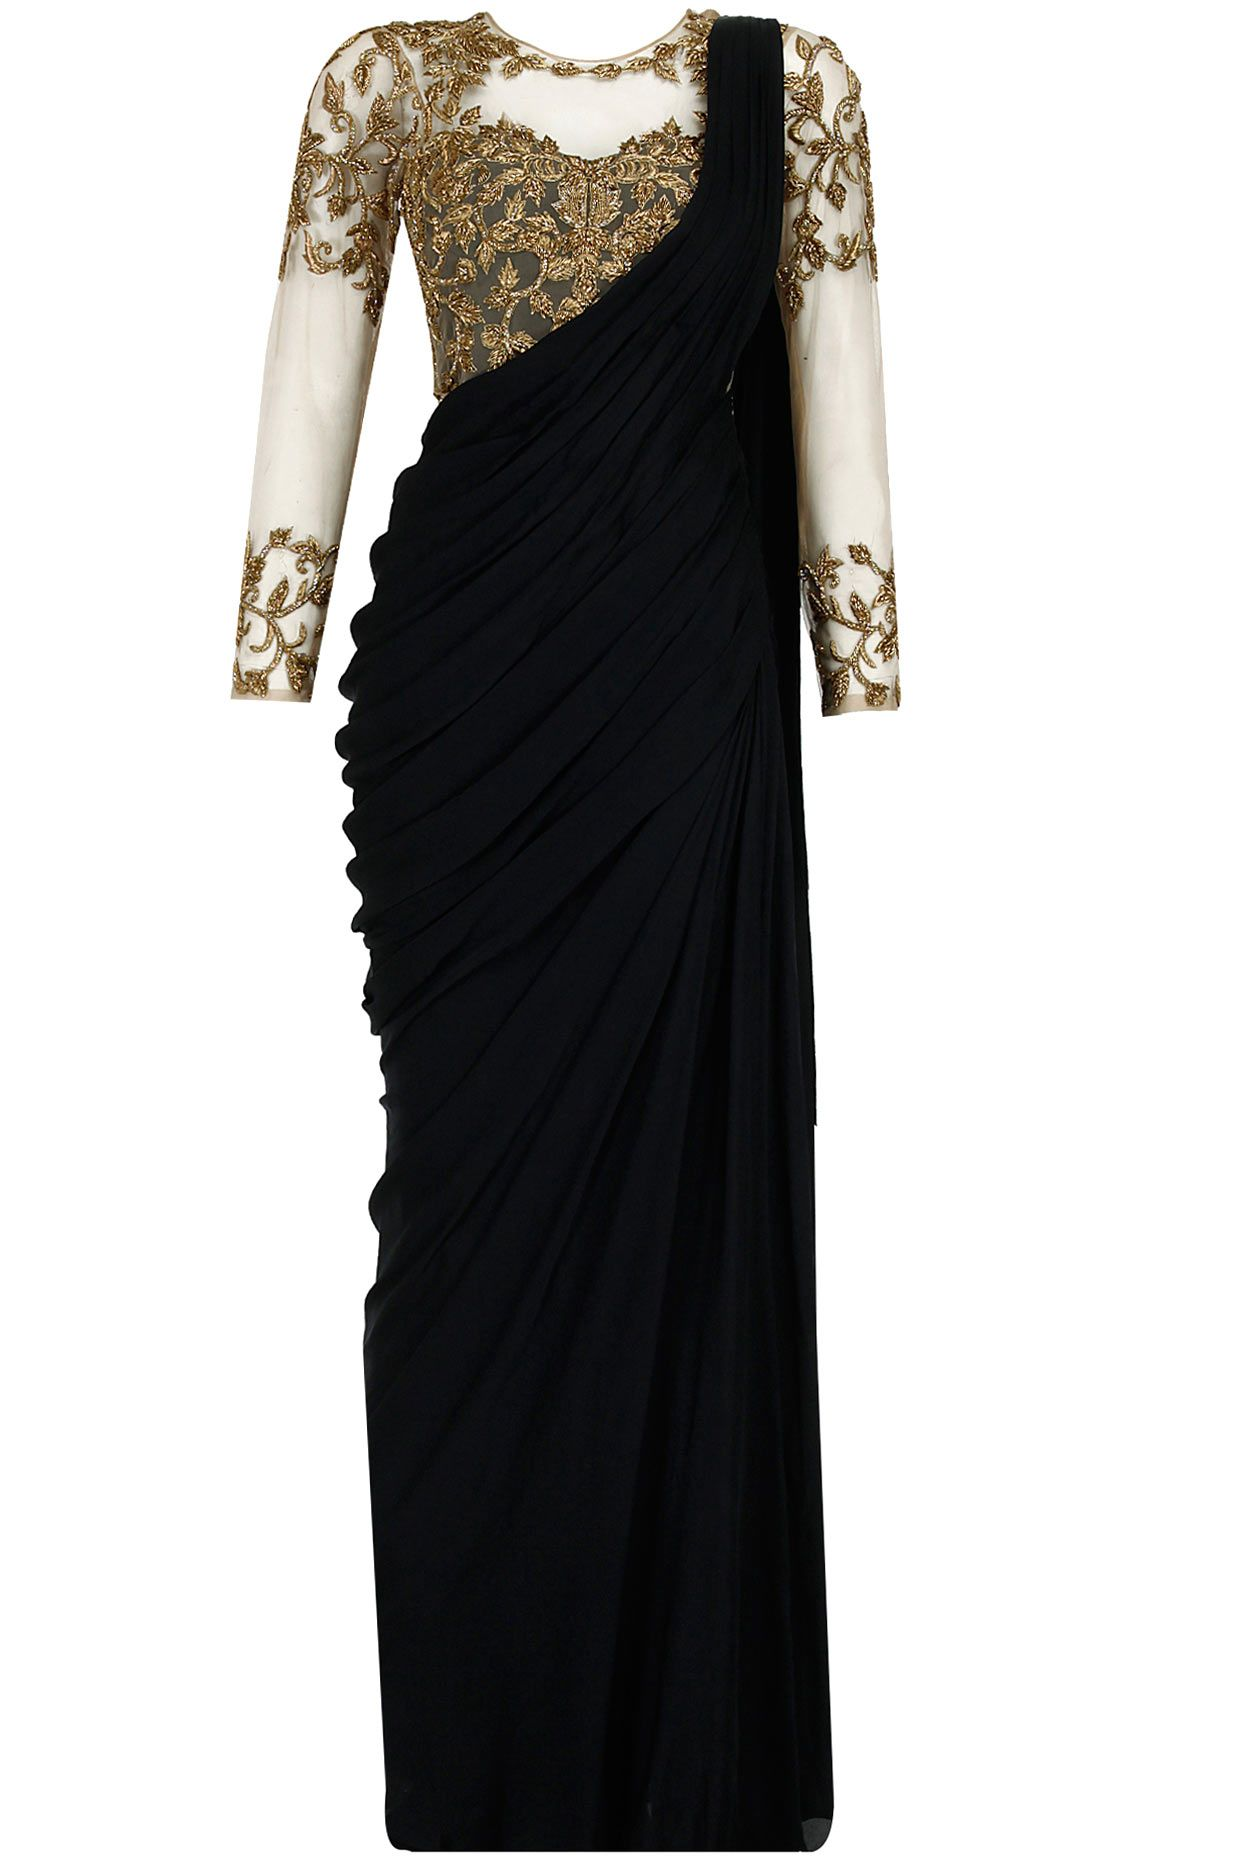 437a40aff0 Black antique gold embroidered pre stitched sari-gown available only at  Pernia's Pop-Up Shop.